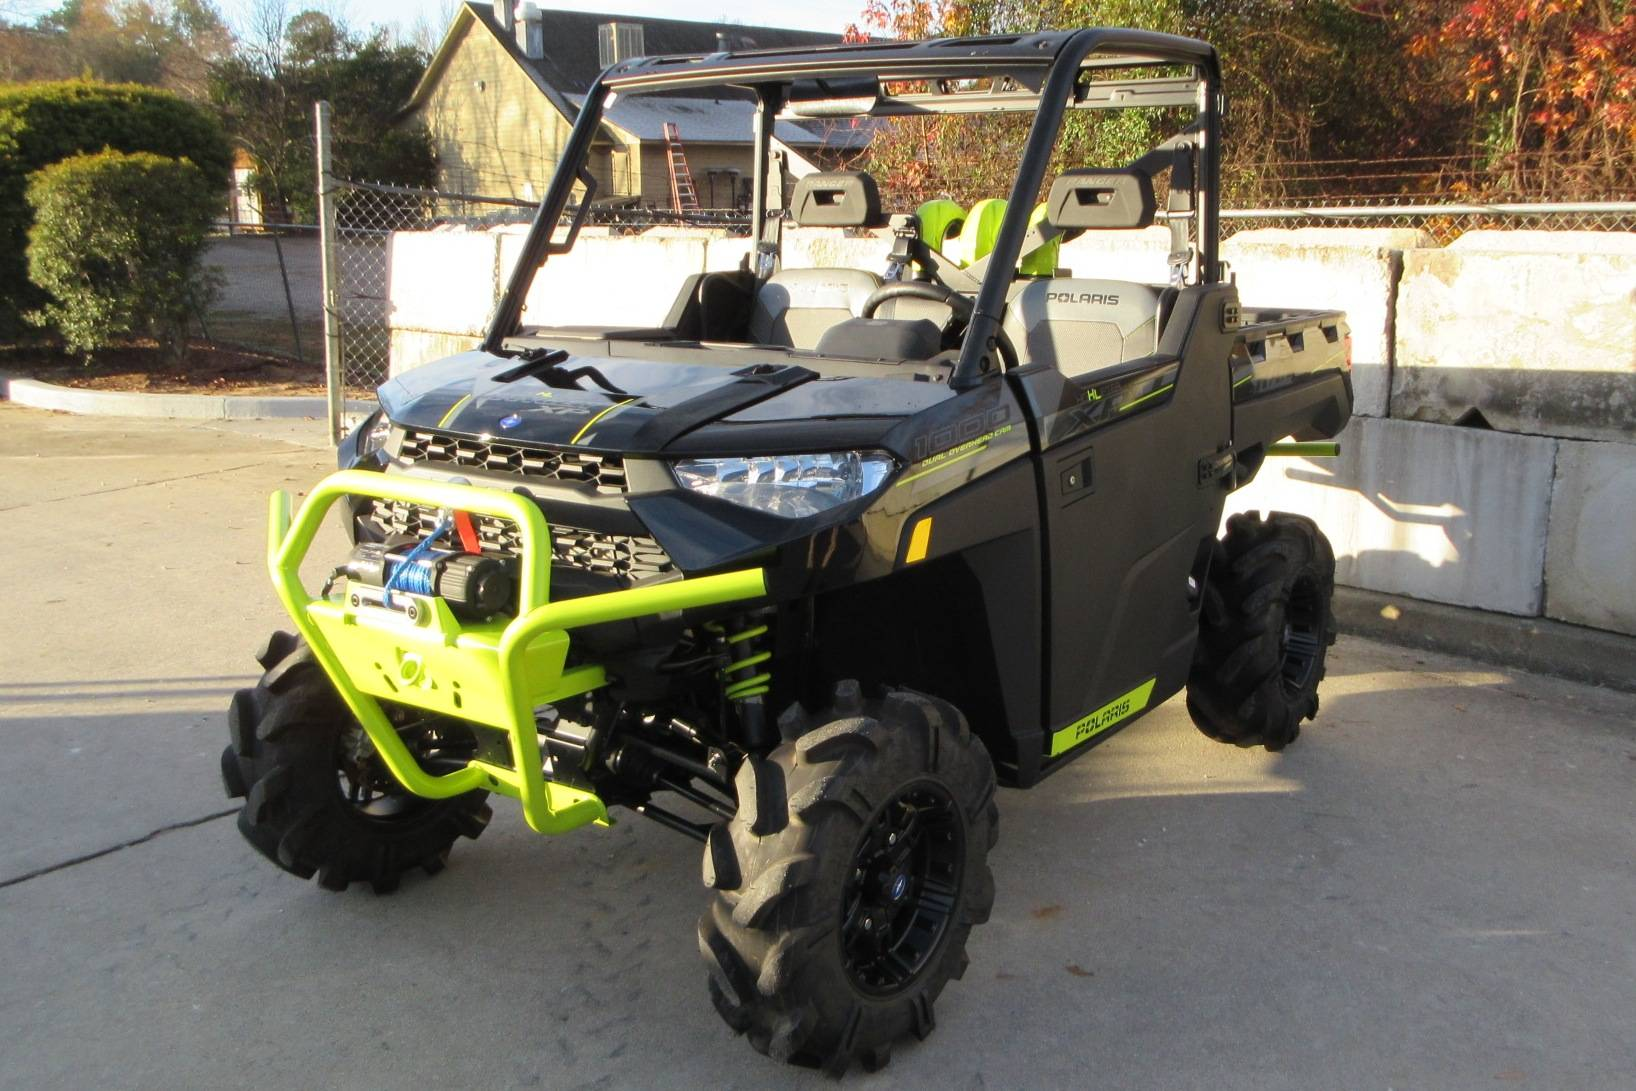 2020 Polaris Ranger XP 1000 High Lifter Edition in Sumter, South Carolina - Photo 3